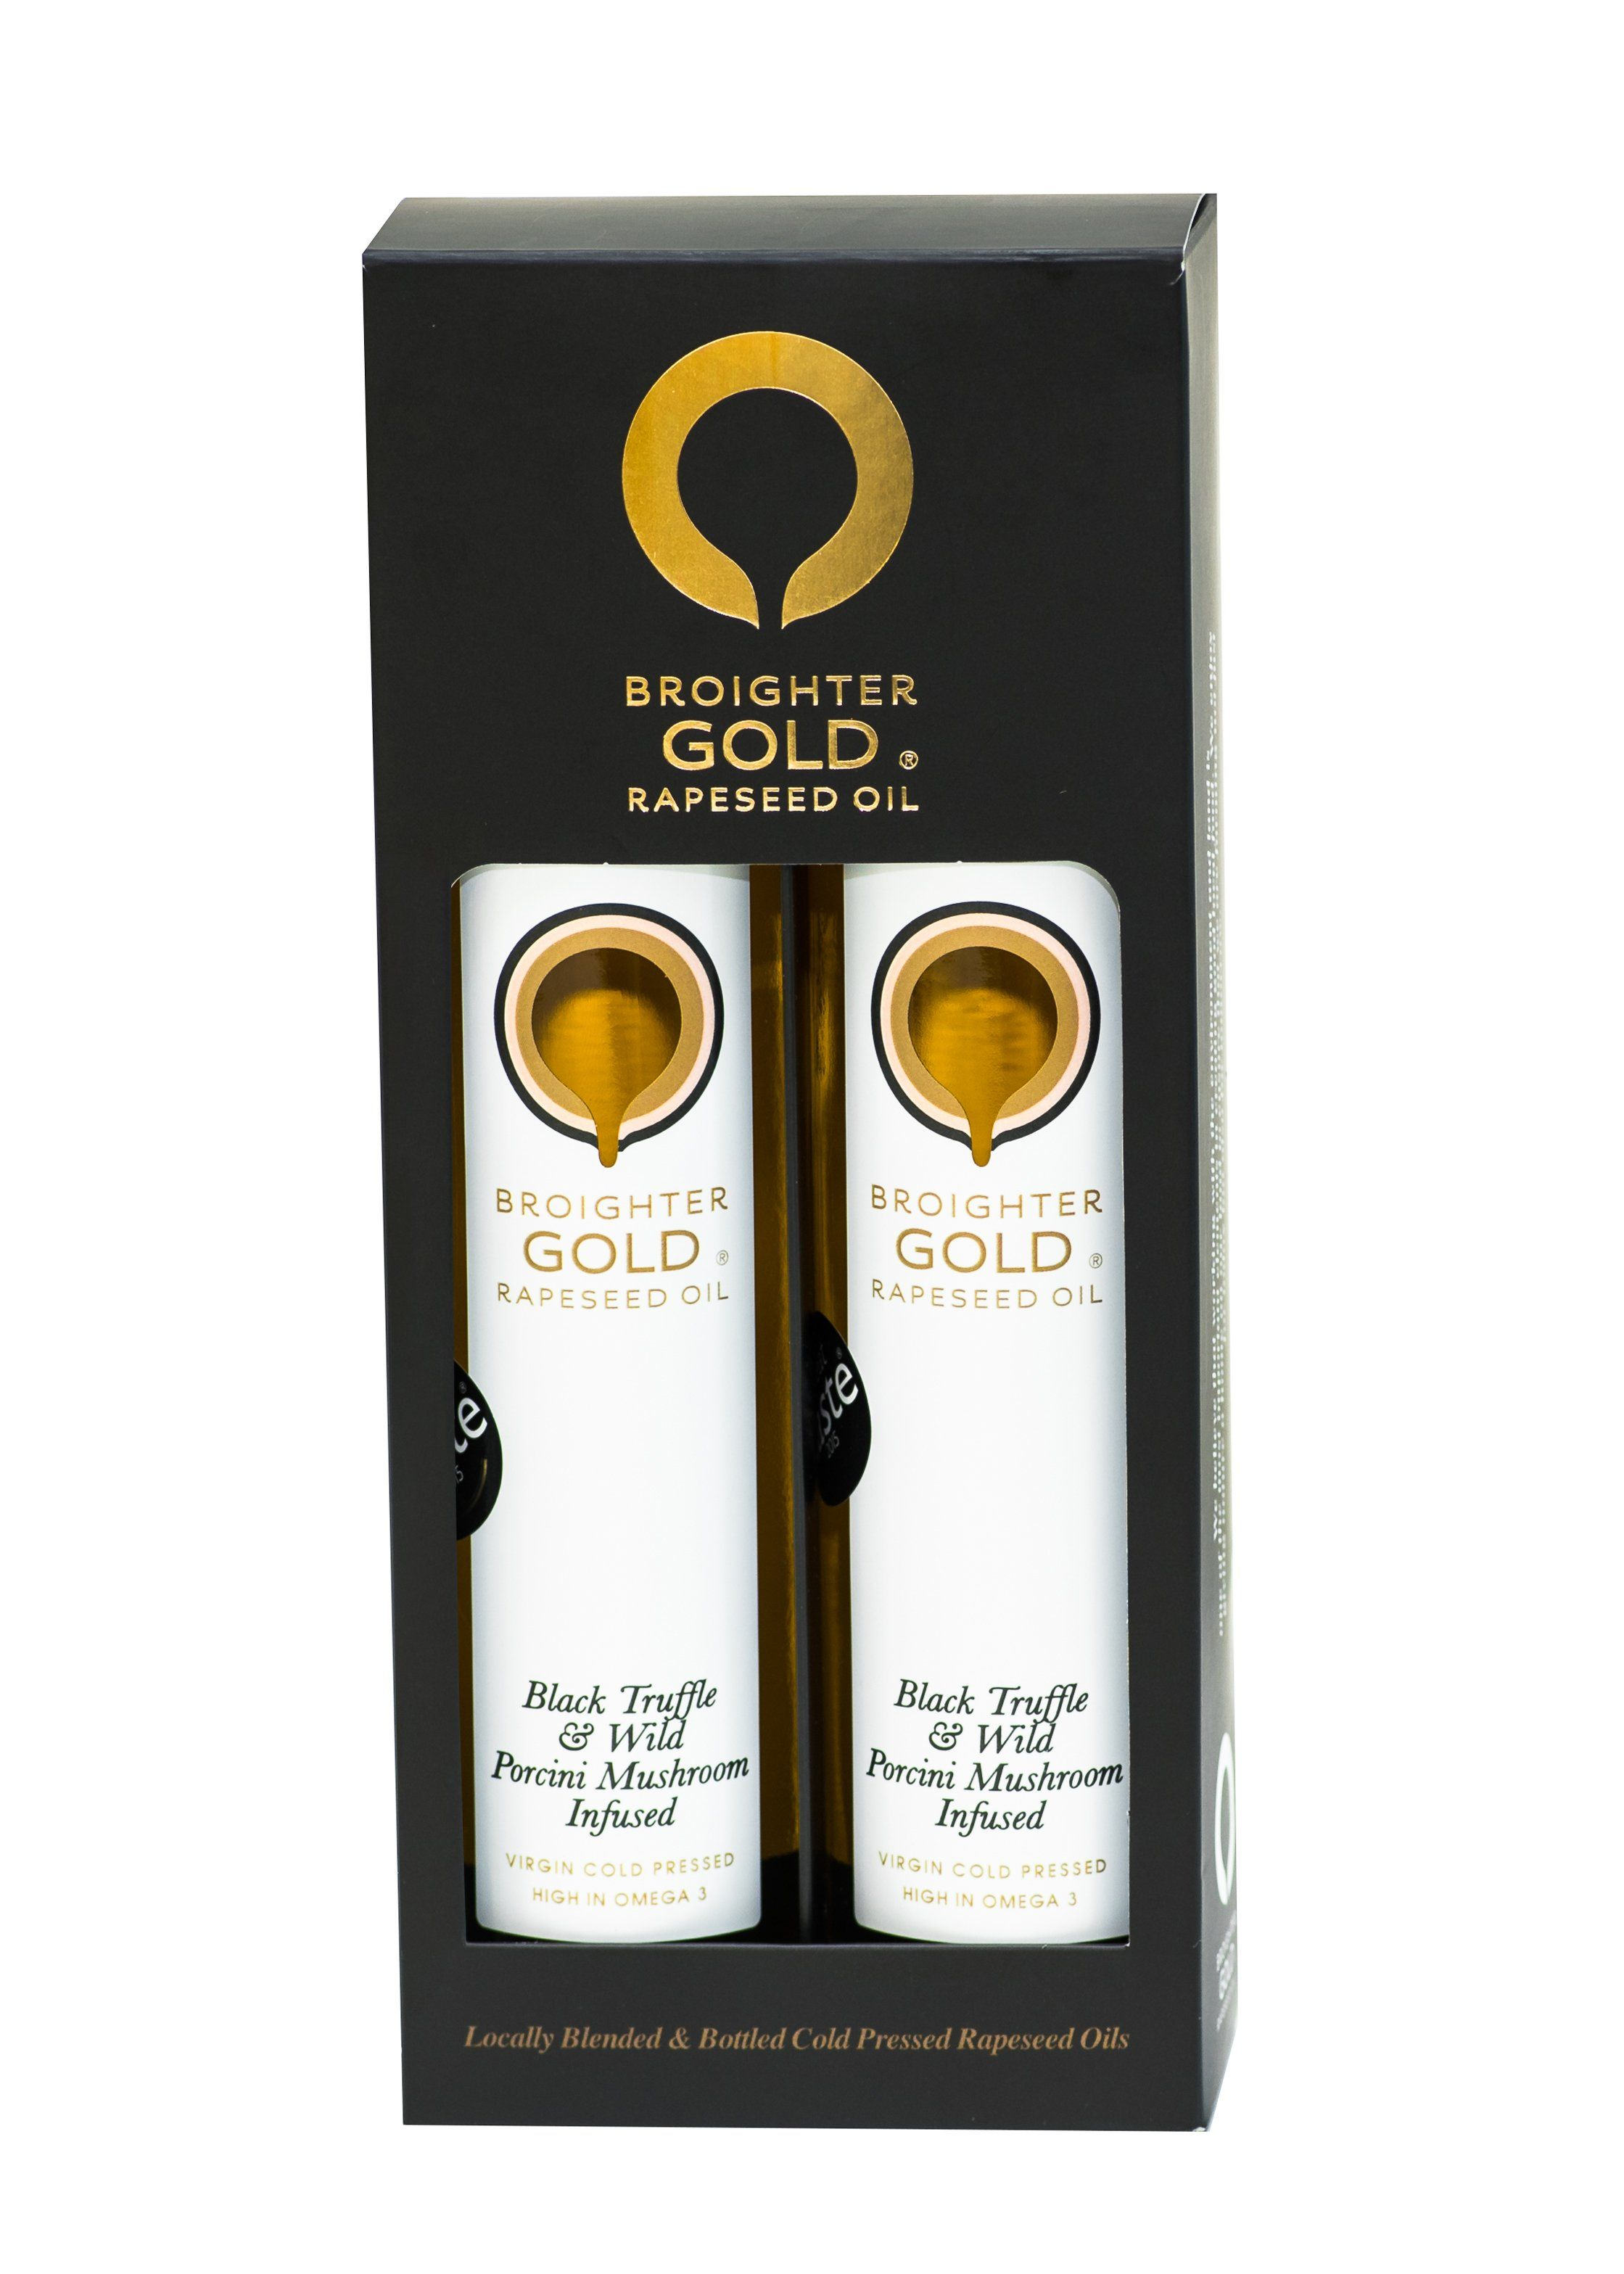 Gourmet Double Black Gift Box Rapeseed Oil Broighter Gold Rapeseed Oil